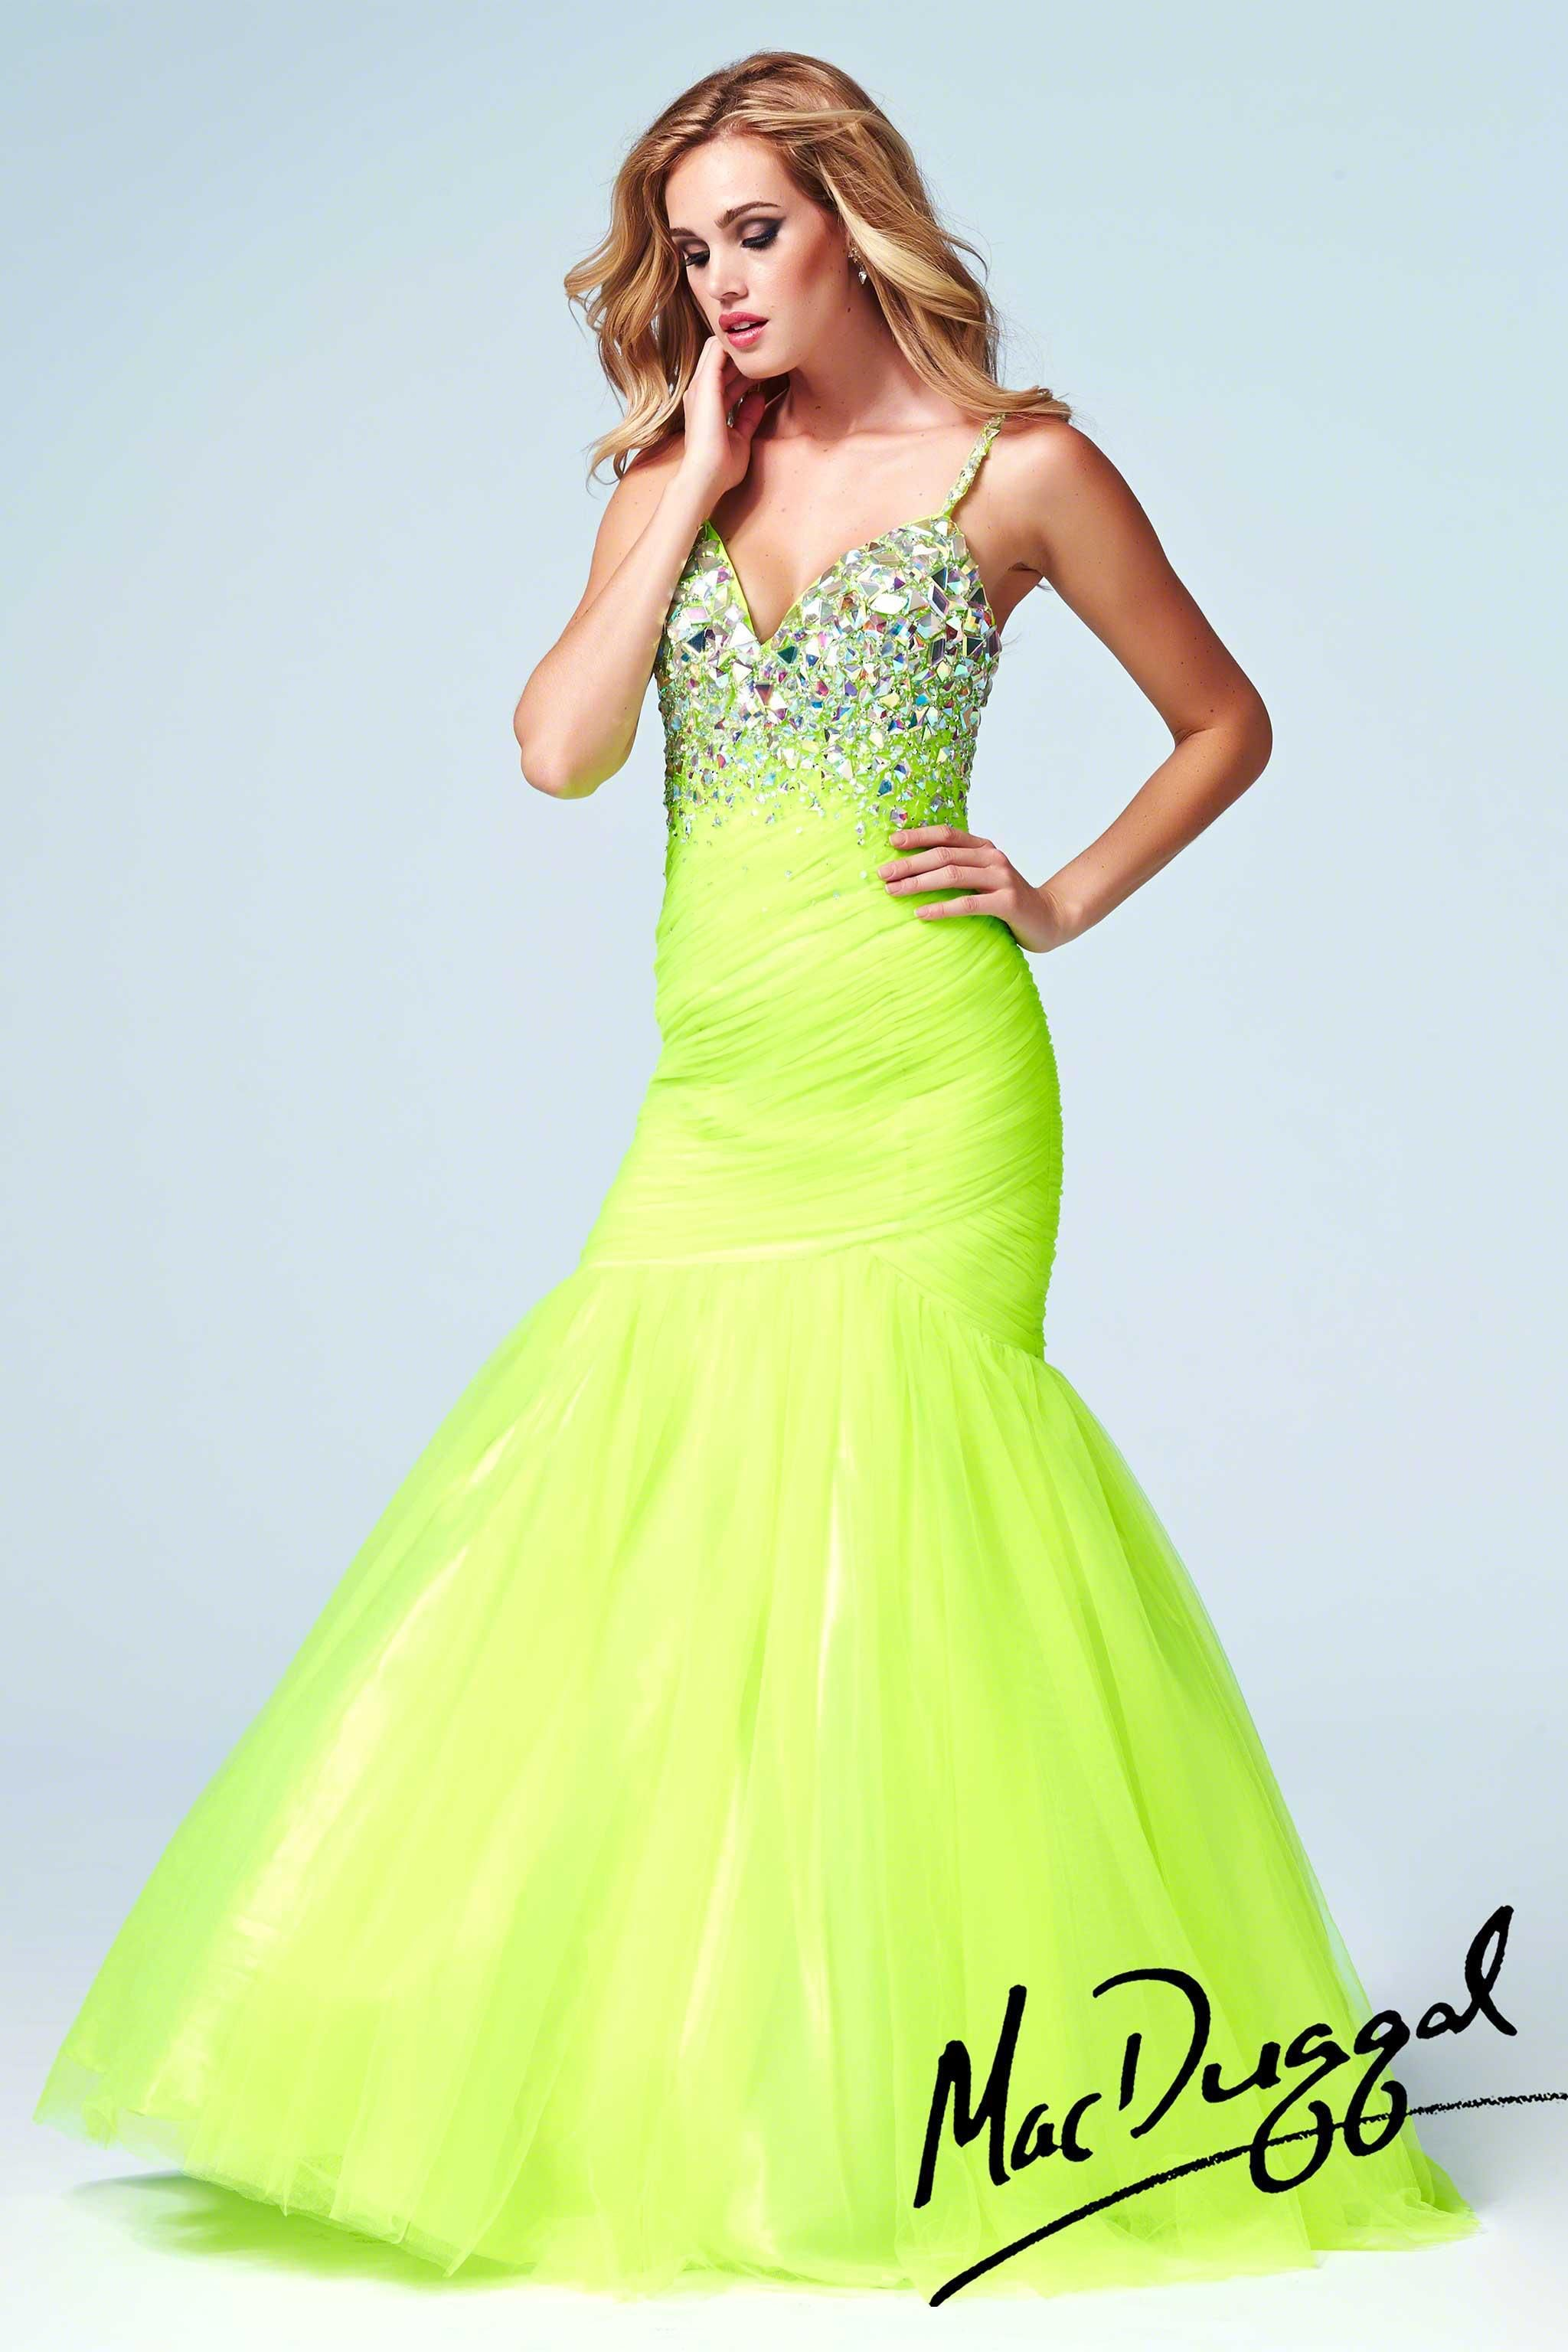 Neon Lime Green Mermaid Cassandra Stone Mac Duggal Prom Gown ...